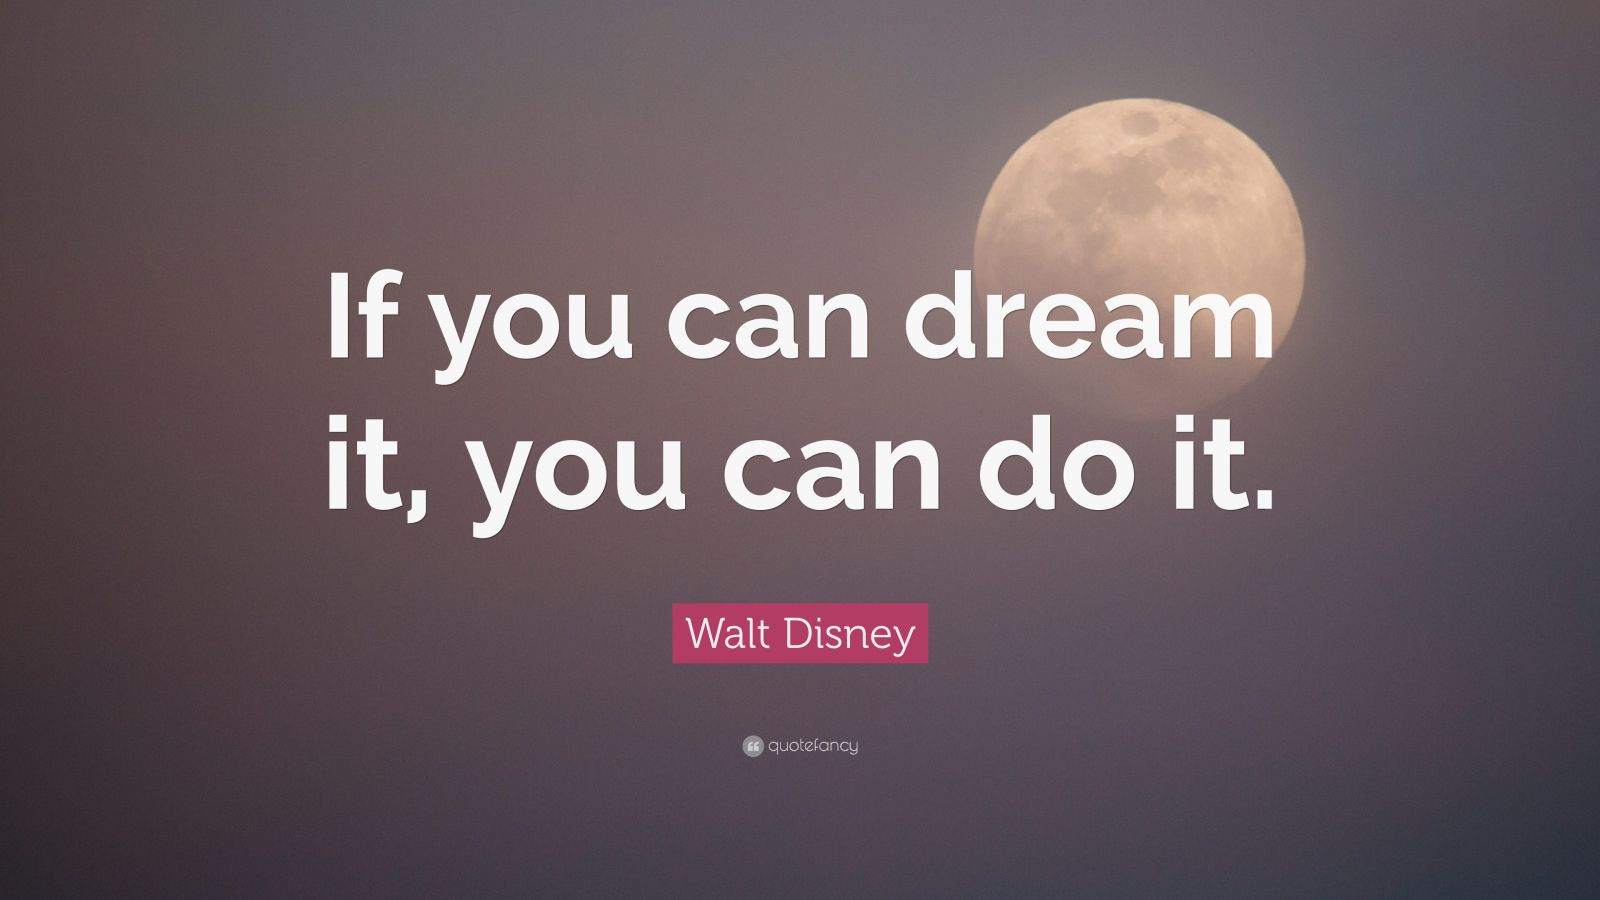 Walt Disney Quotes  100 wallpapers    Quotefancy Walt Disney Quote     If you can dream it  you can do it